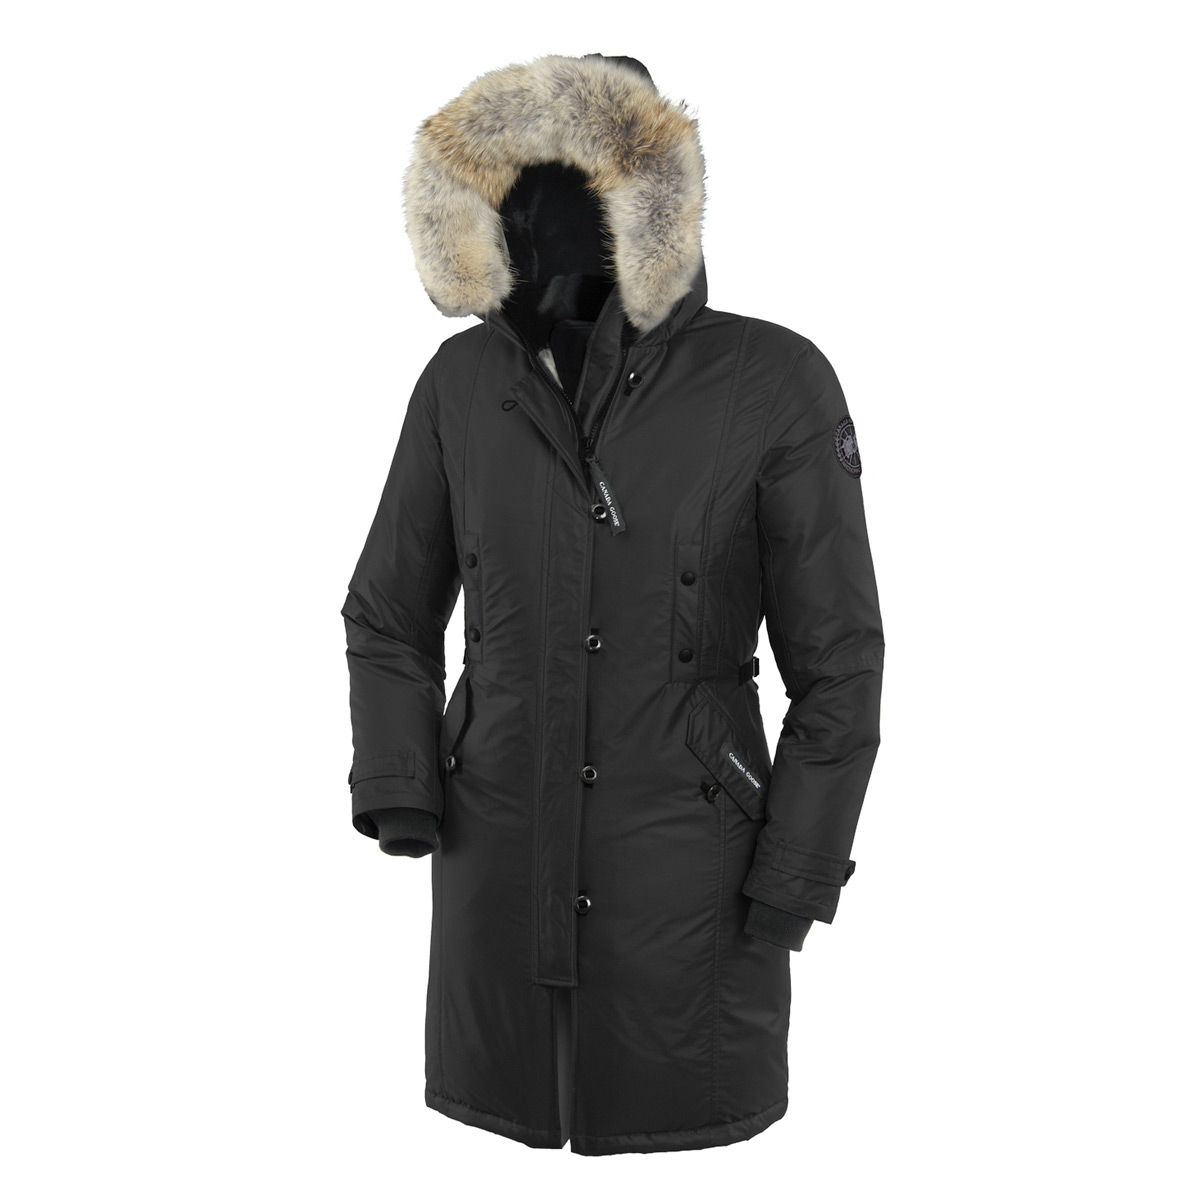 Canada Goose Cg55 Kensington Parka BLACK For Women